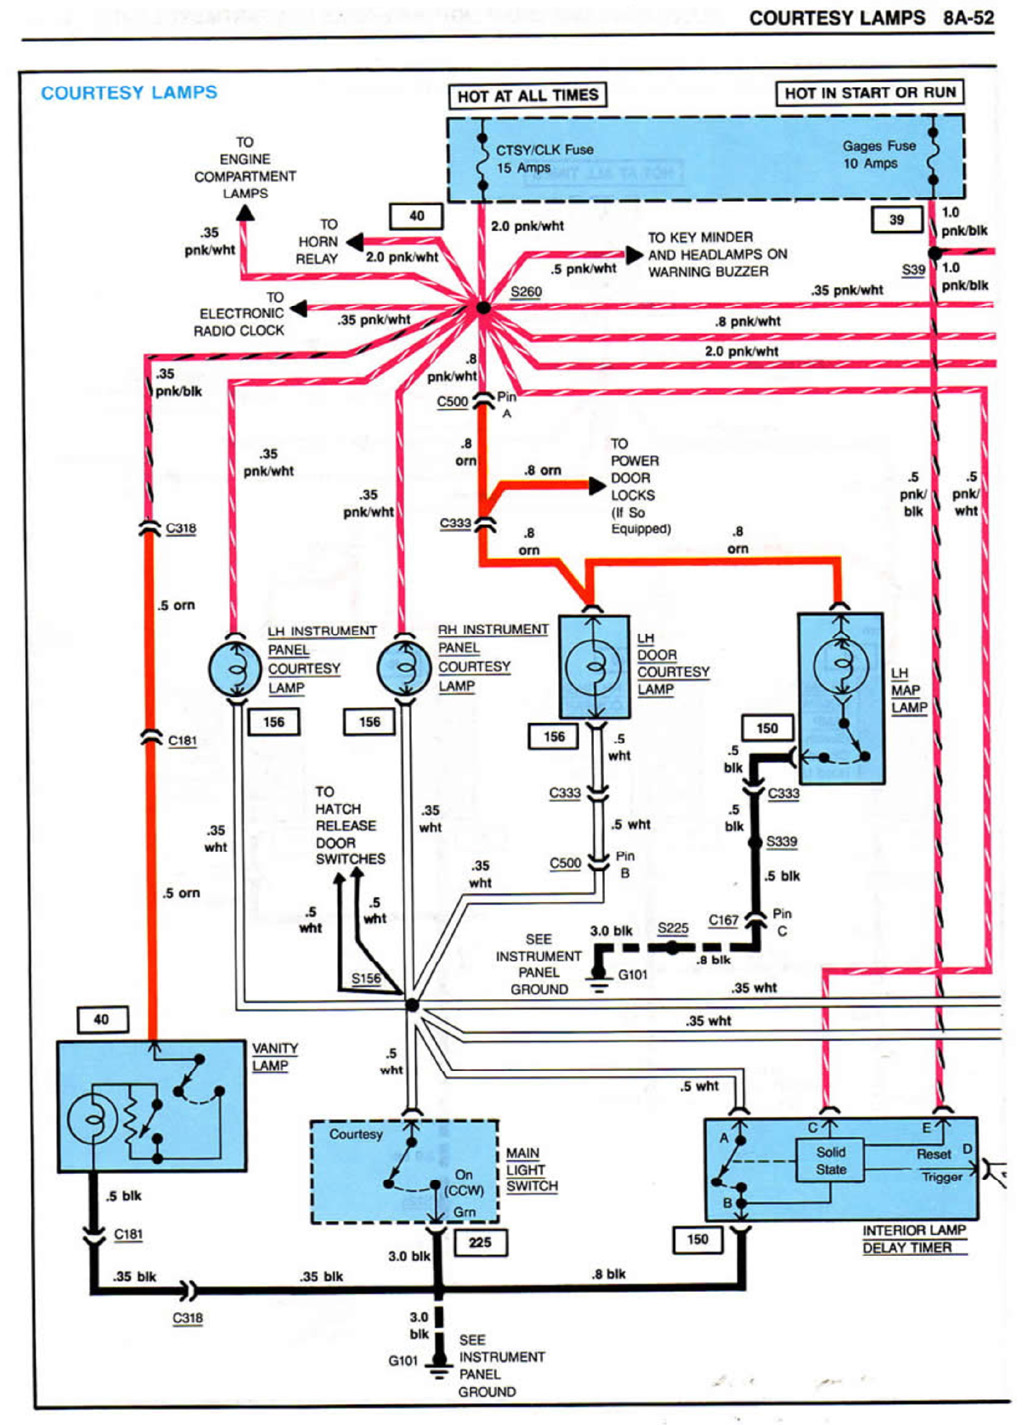 1984_Corvette_Courtesy_Lamps1 mesmerizing c4 corvette wiring diagram gallery best image 1969 corvette wiring schematic at honlapkeszites.co